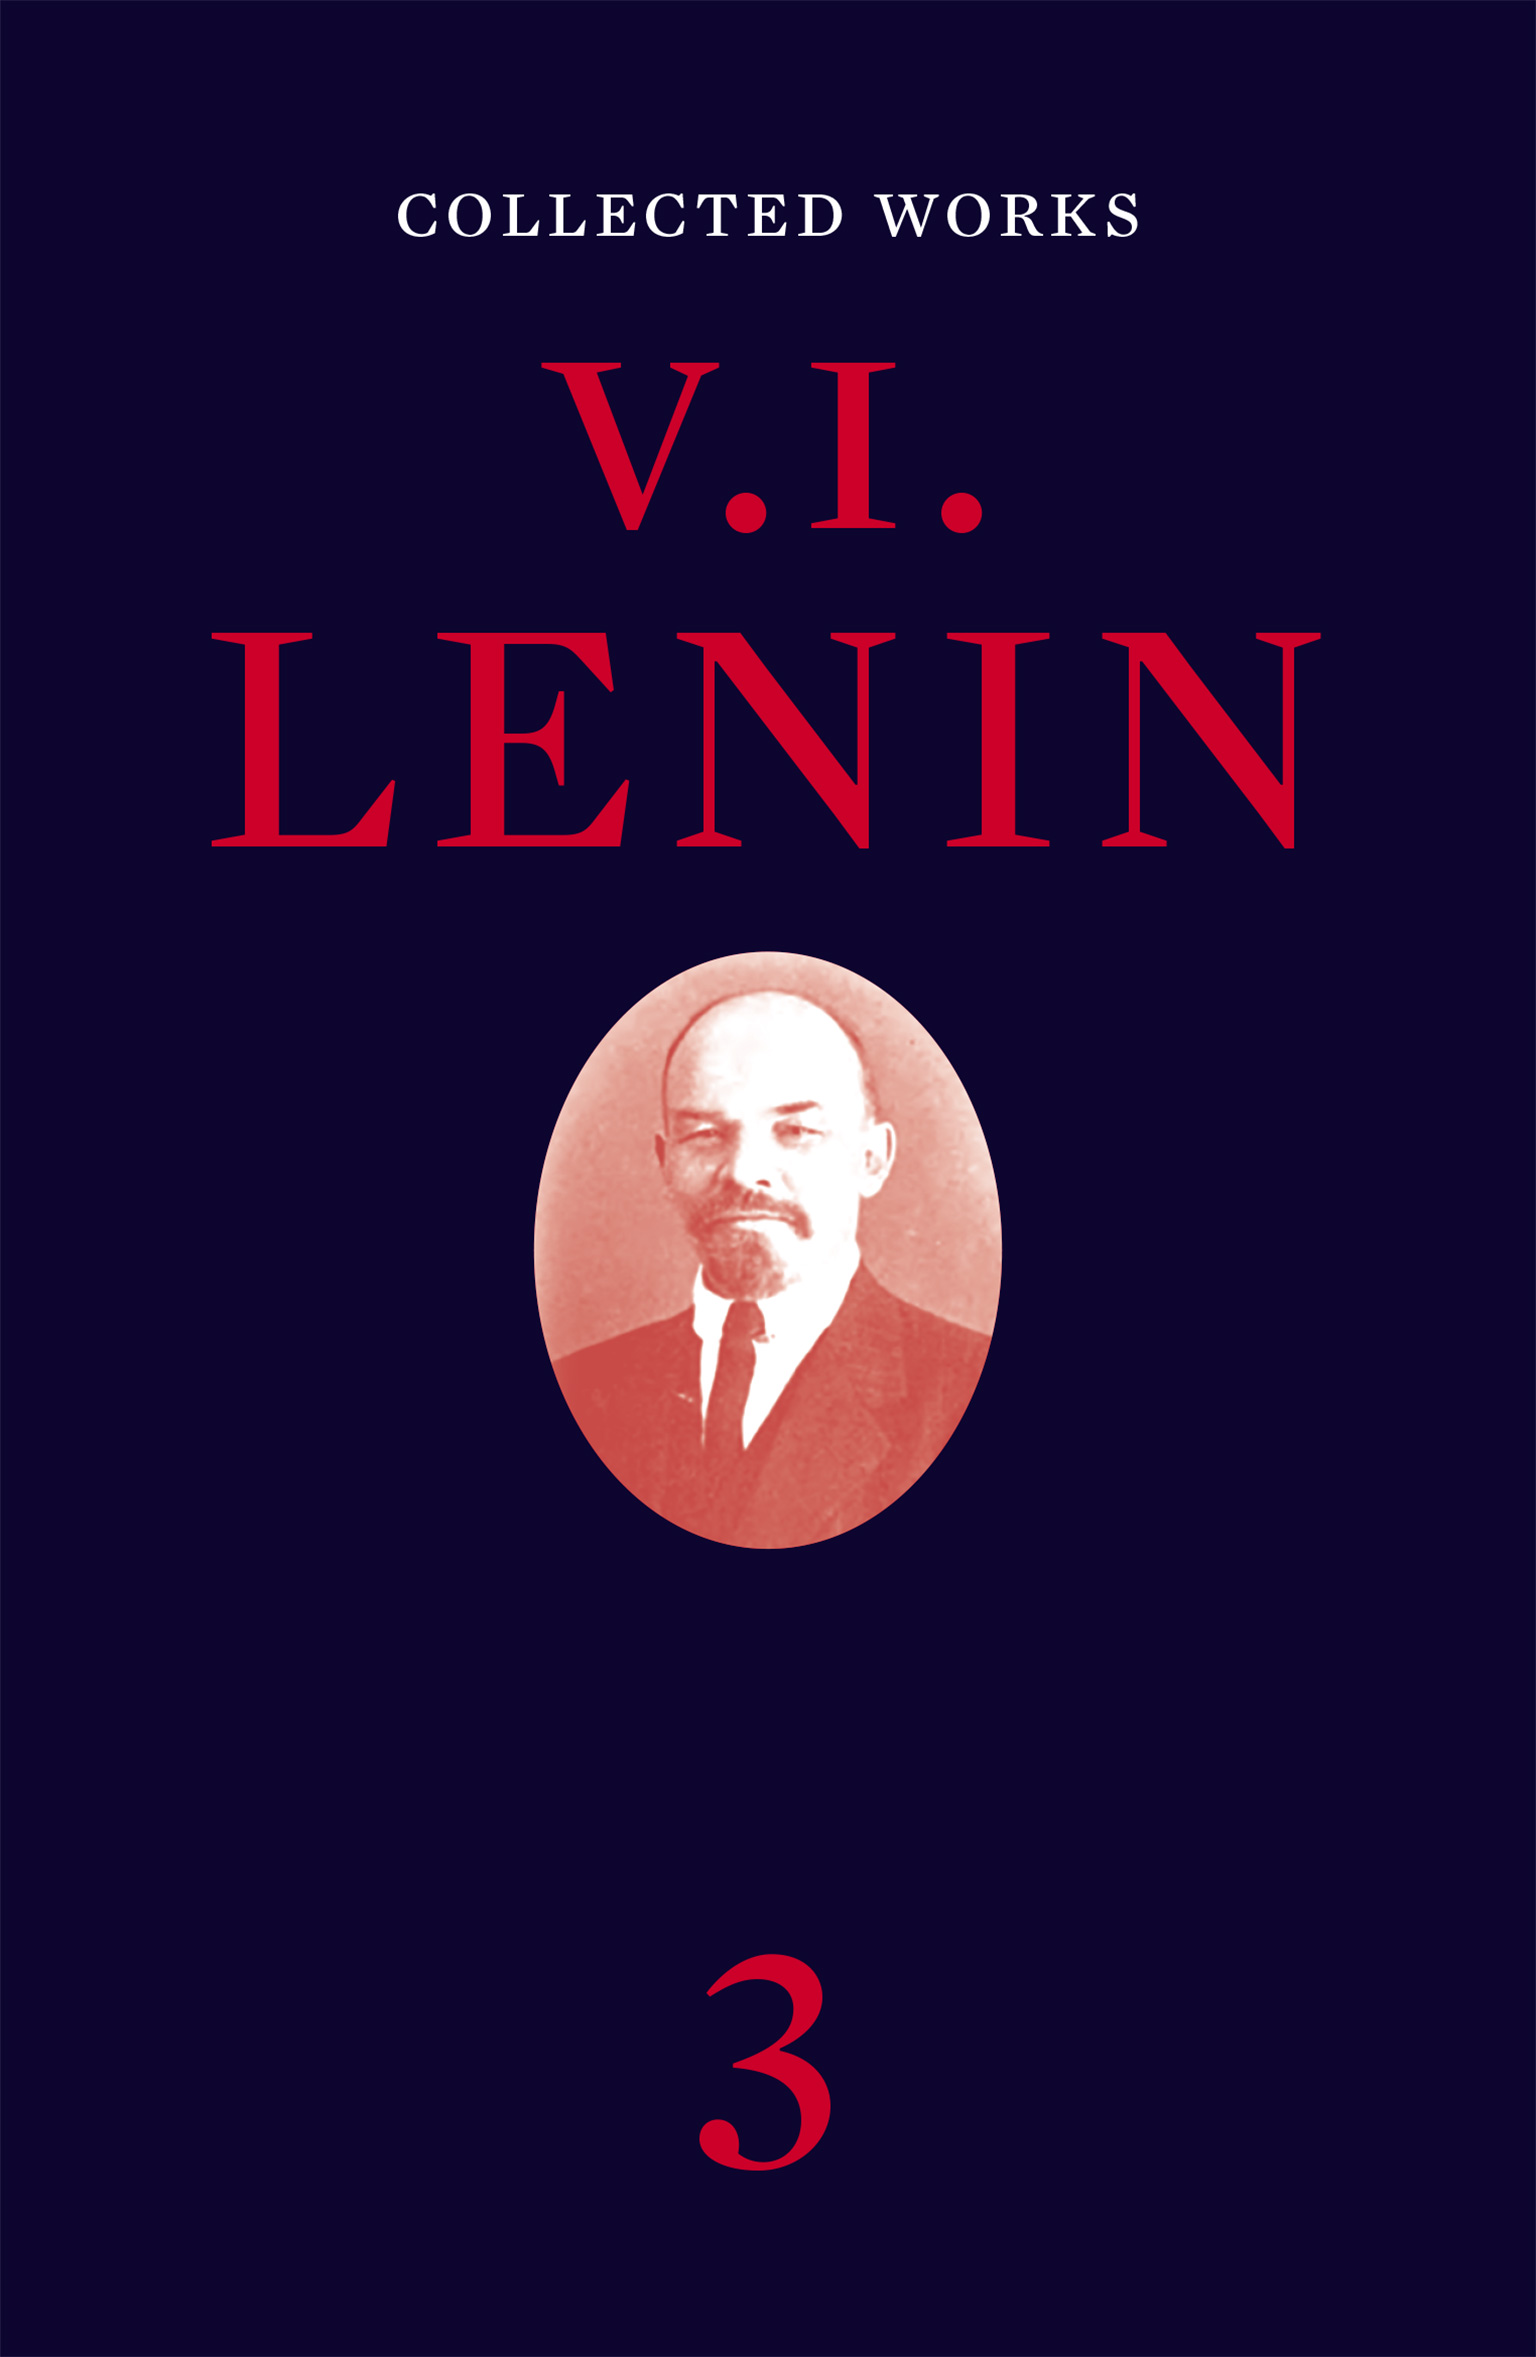 Lenin---collected-works-v3